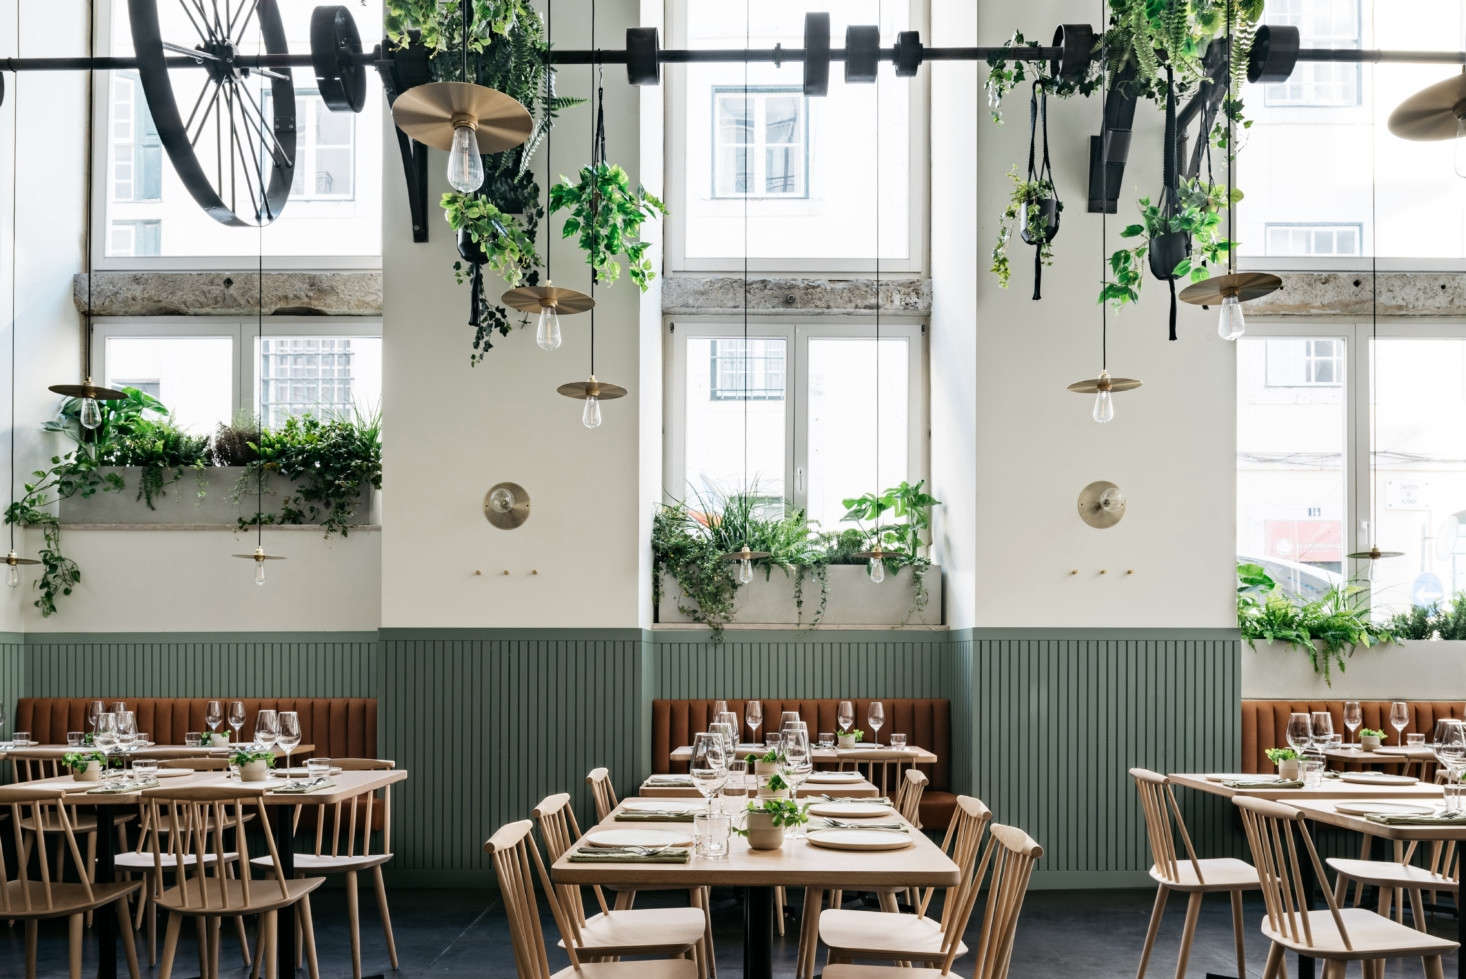 Urban Jungle: Prado, a New Restaurant in an Abandoned Factory in Lisbon